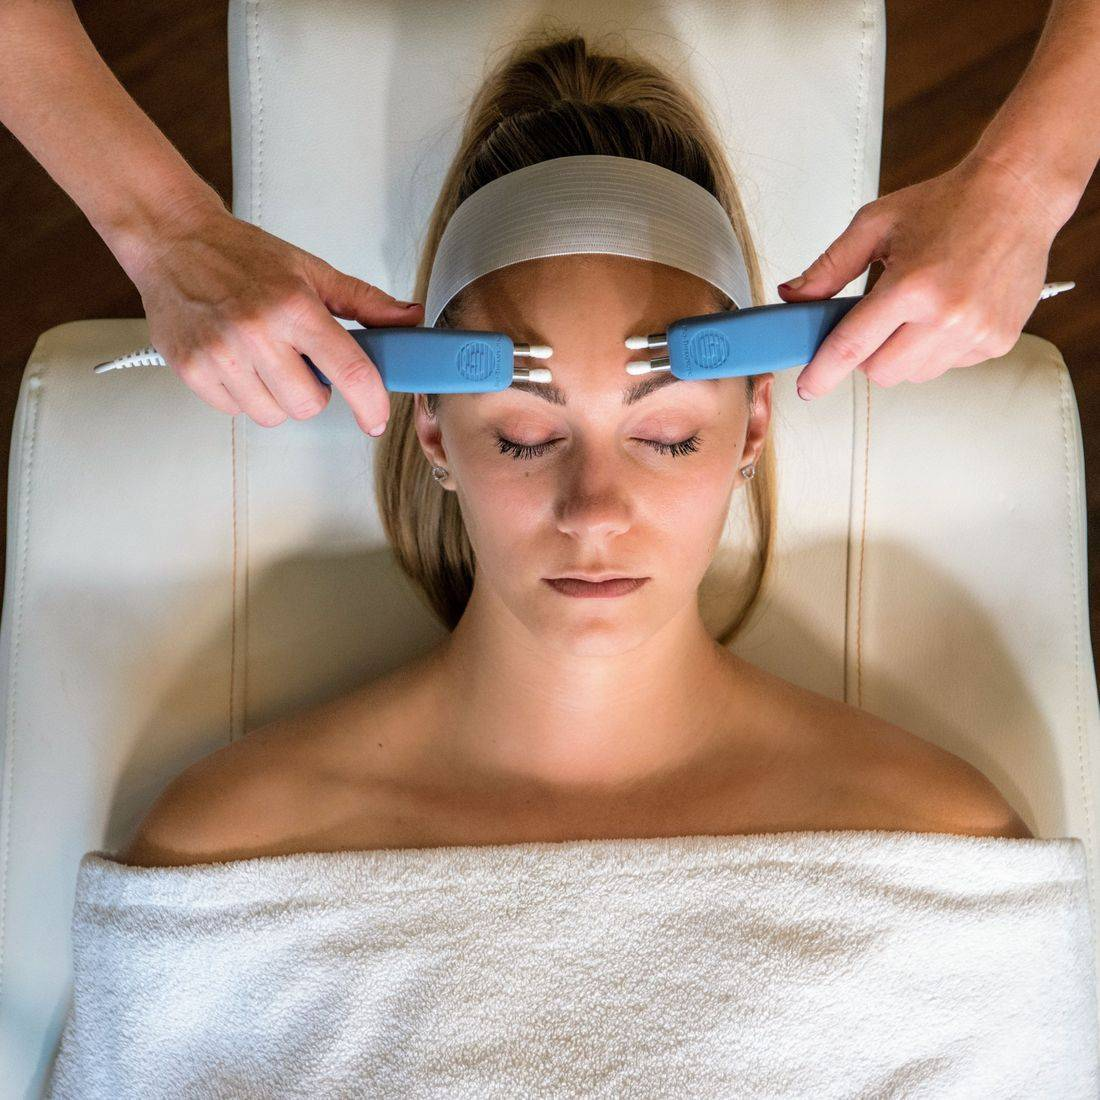 Non-Surgical Face Lift offer, Caci, Facial toning, Creativity beauty solutions